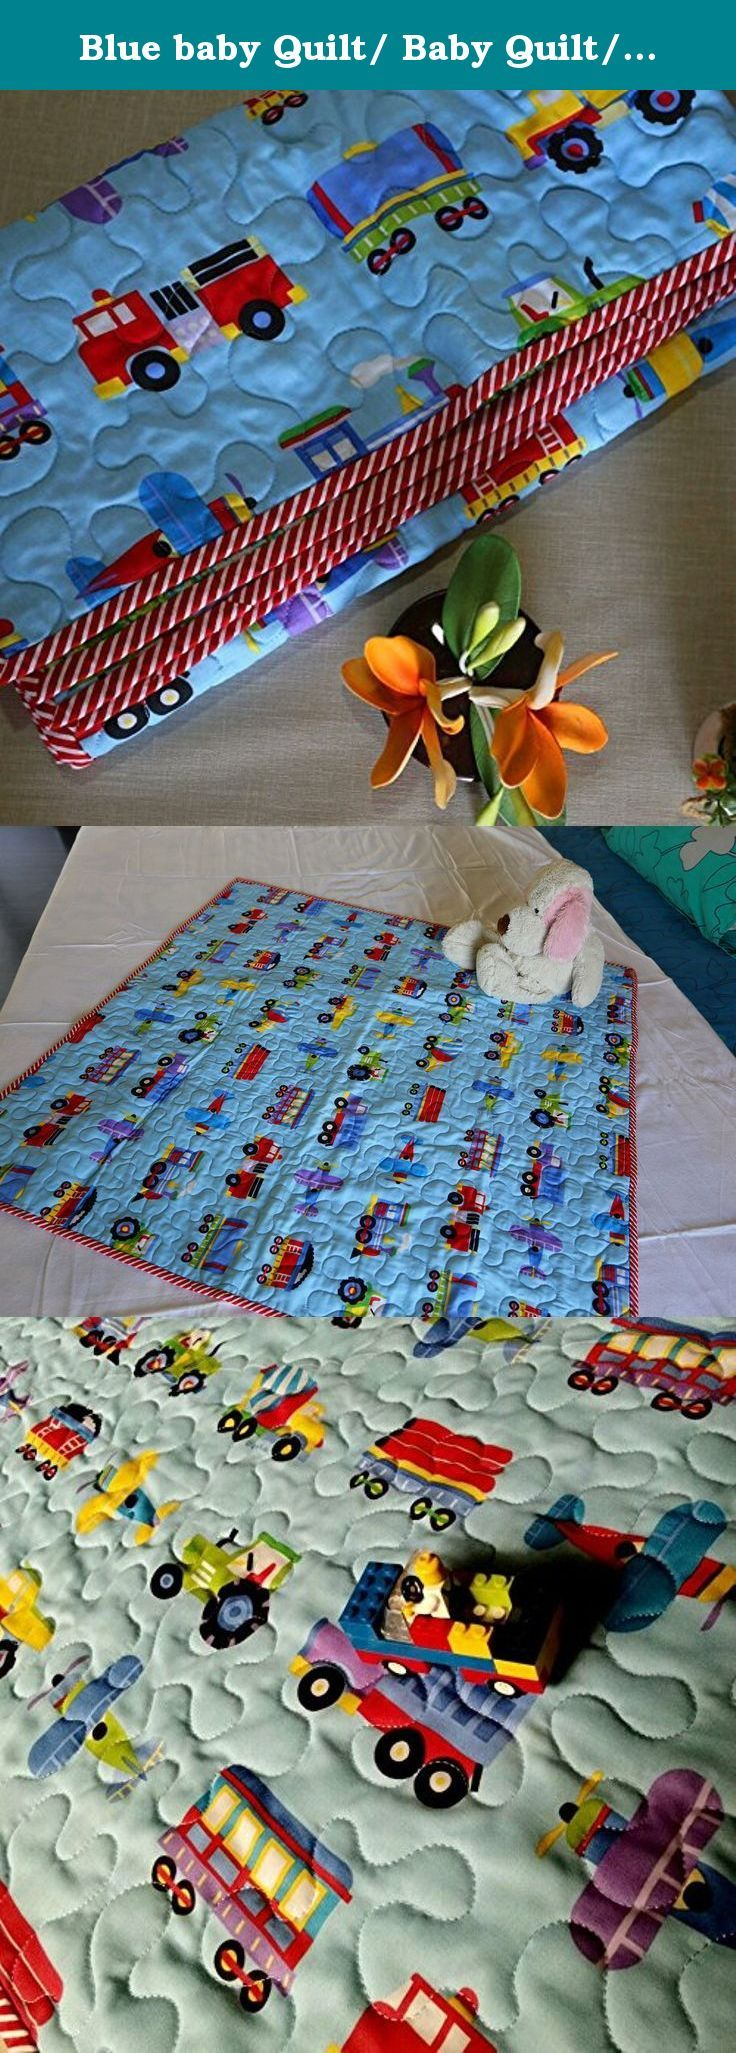 Baby quilts bed covers - Blue Baby Quilt Baby Quilt Vehical Quilt Cars Quilt Baby Shower Gift